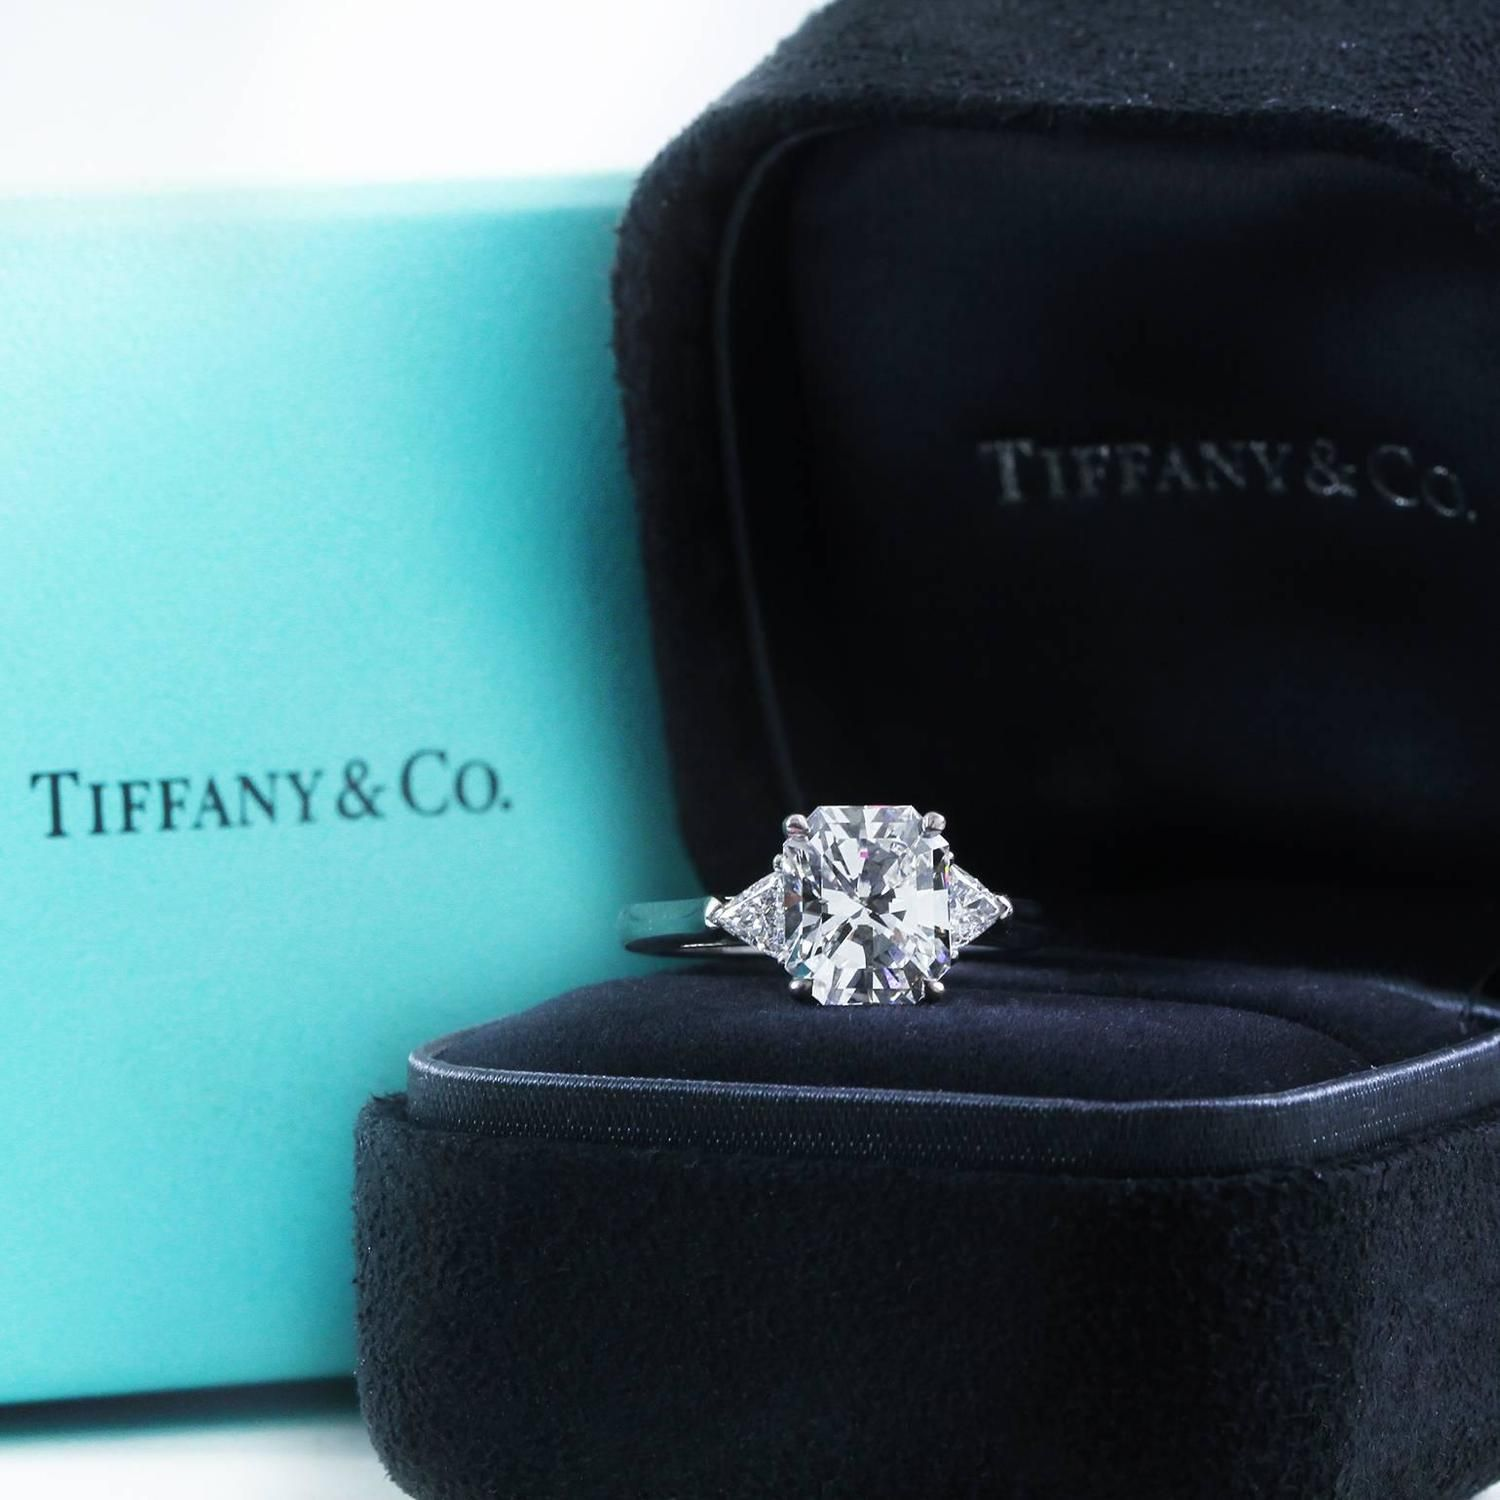 fad67613a6fd8 Tiffany and Co. 2.73 Carat Radiant Cut Diamond Gold 3 Stone ...